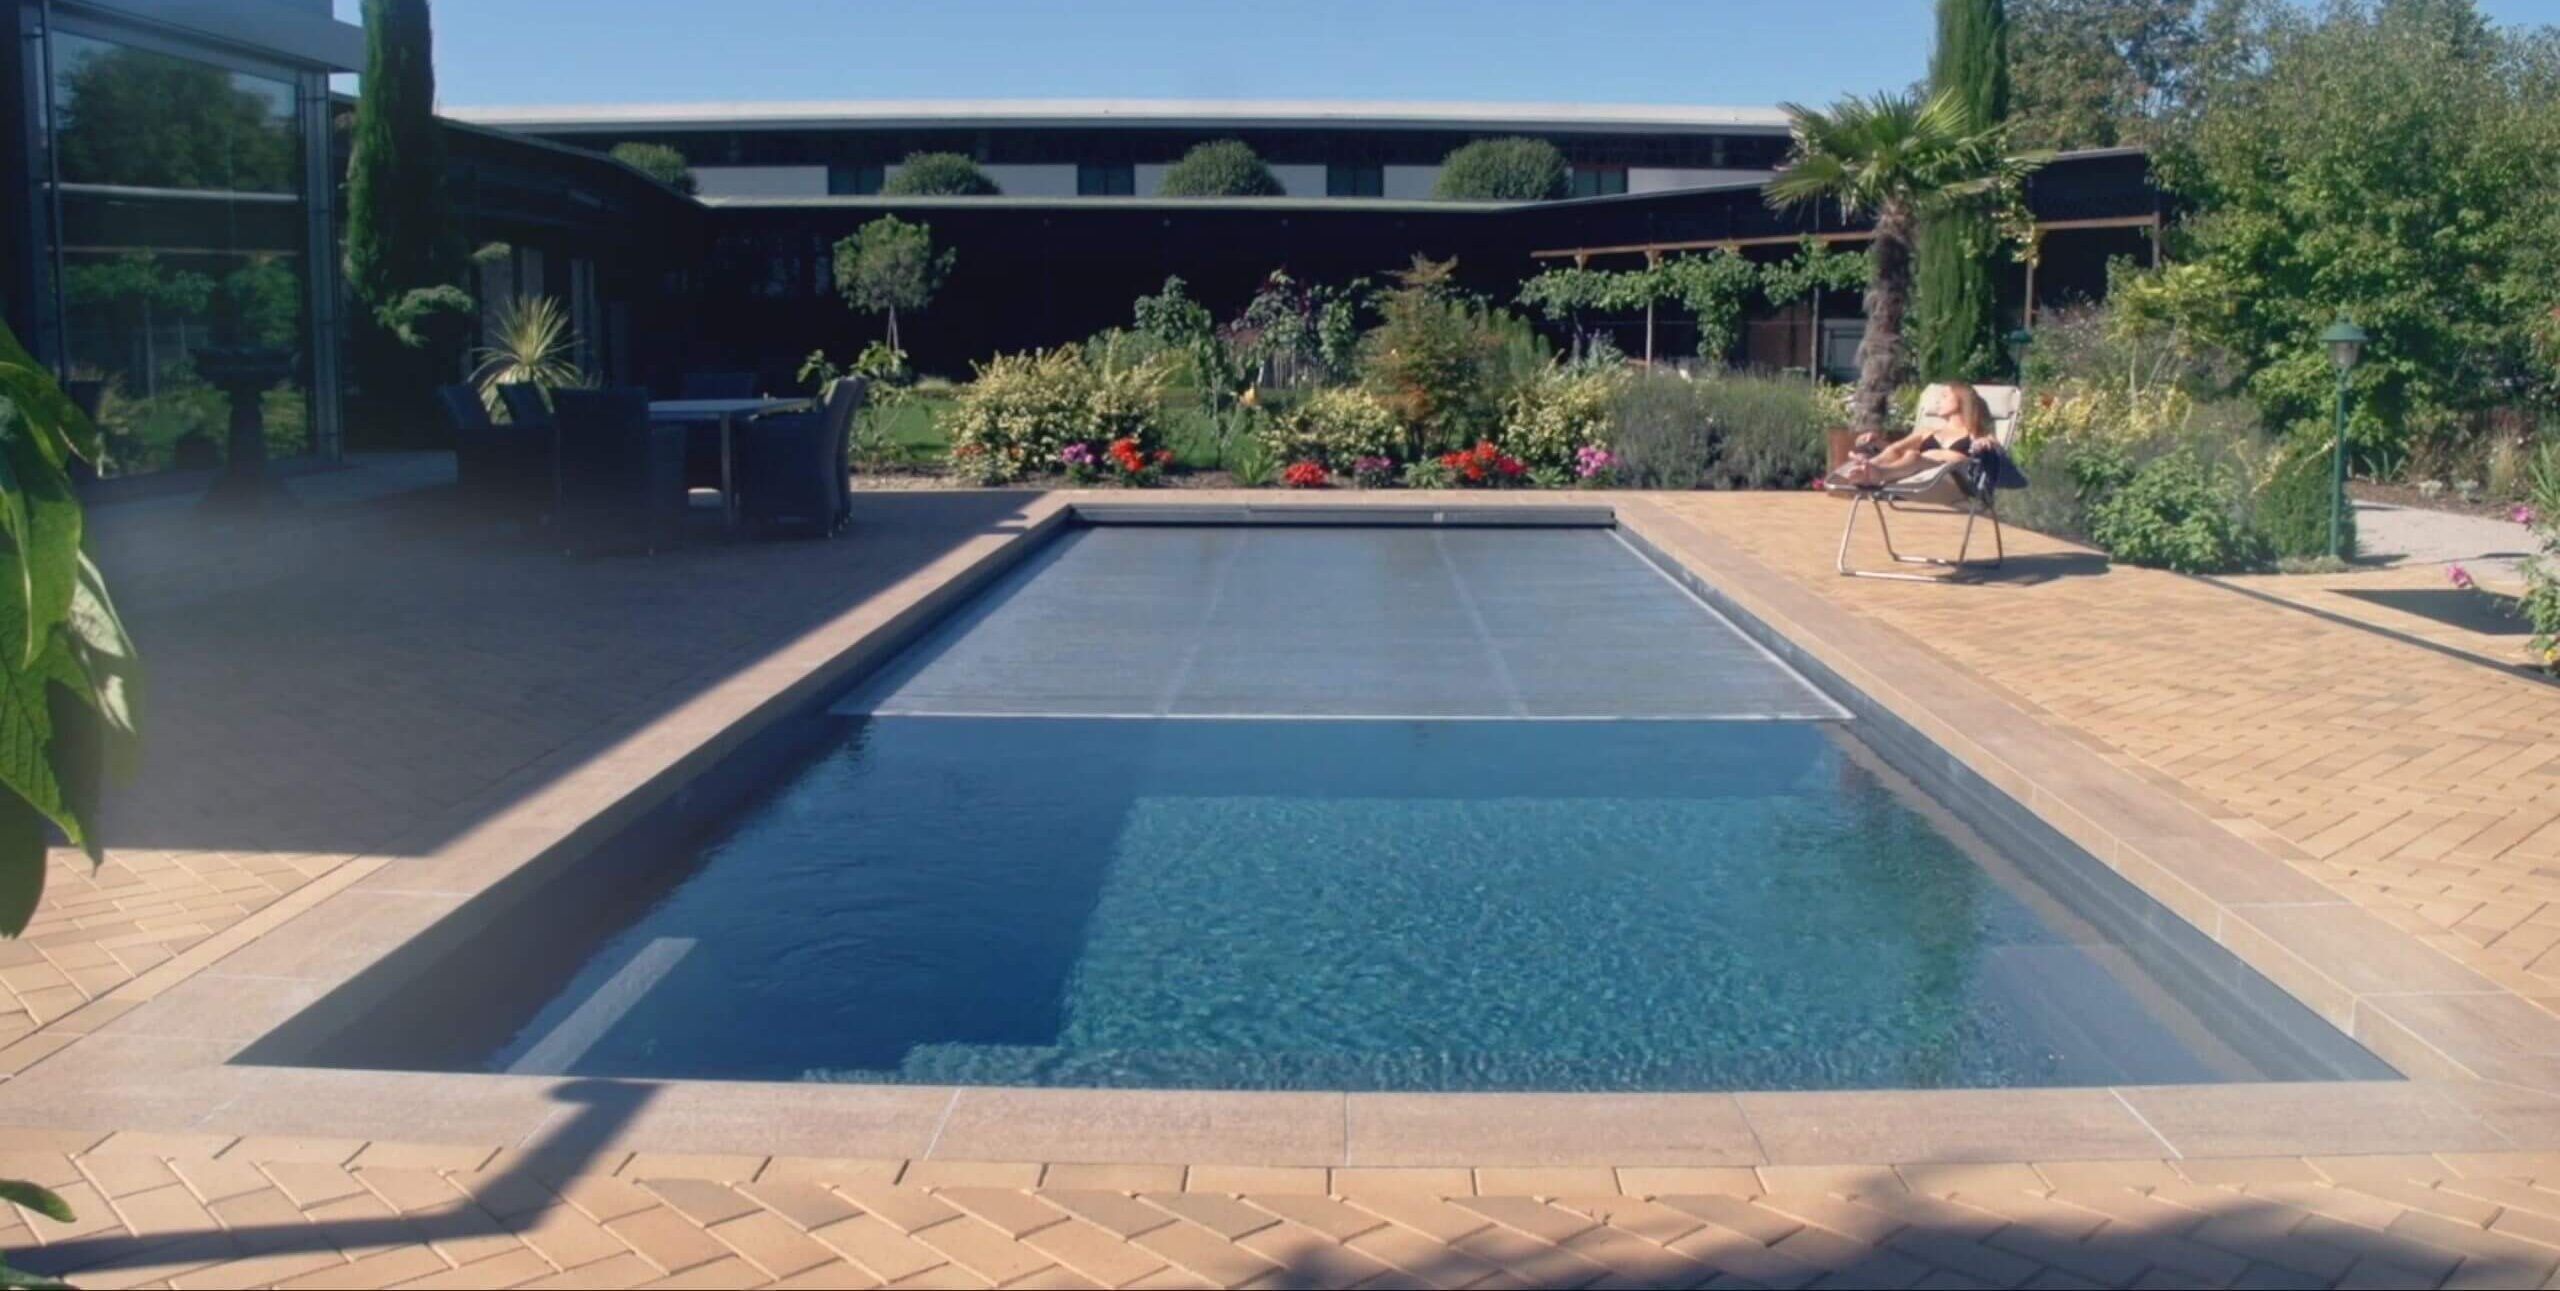 12 Mil vs 16 Mil Pool Cover: the Best One to Choose 3